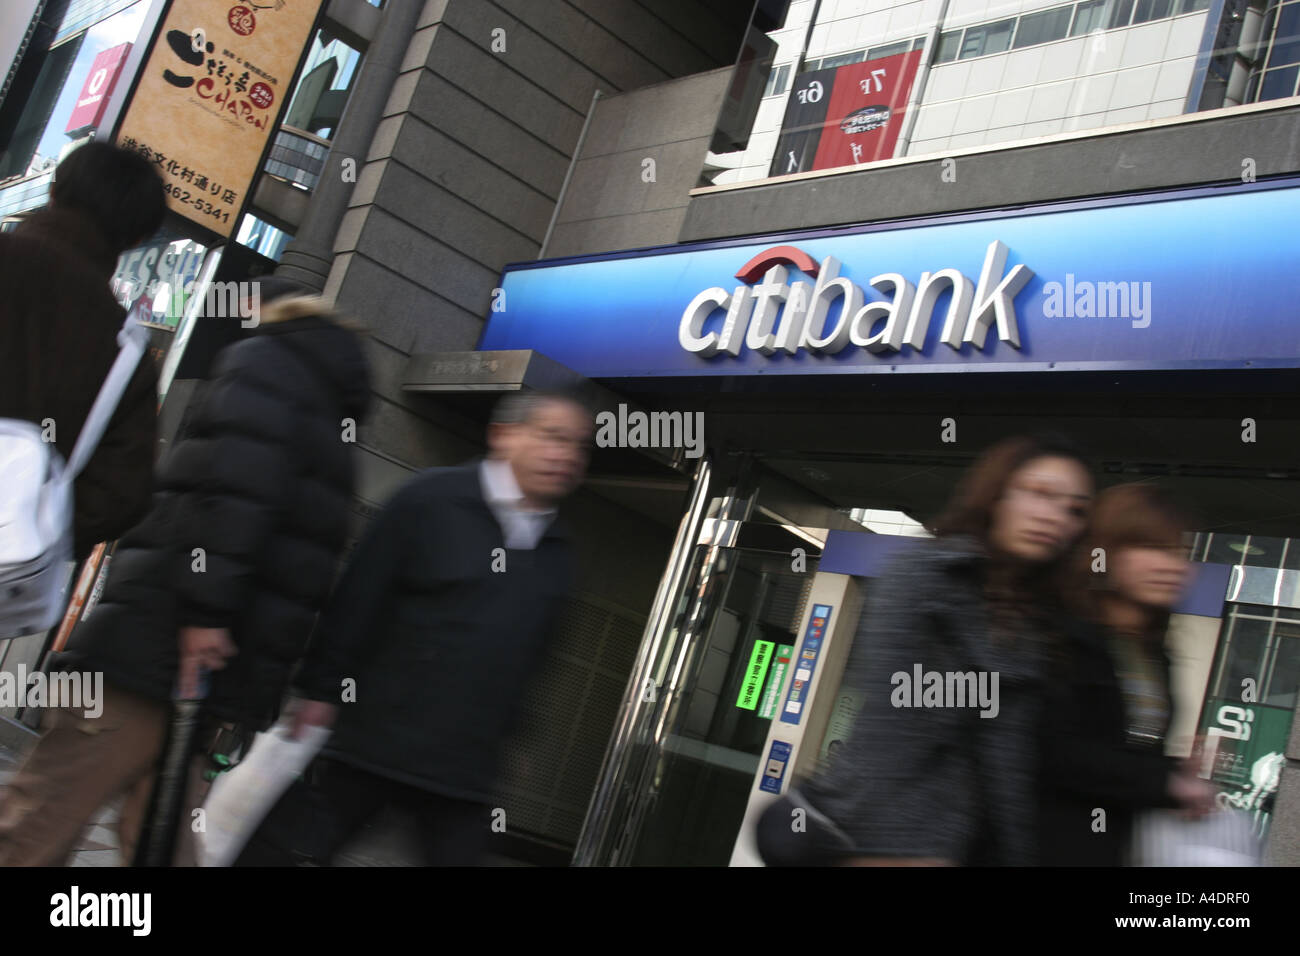 Citibank Japan branch in the shibuya district of Tokyo, Japan. - Stock Image